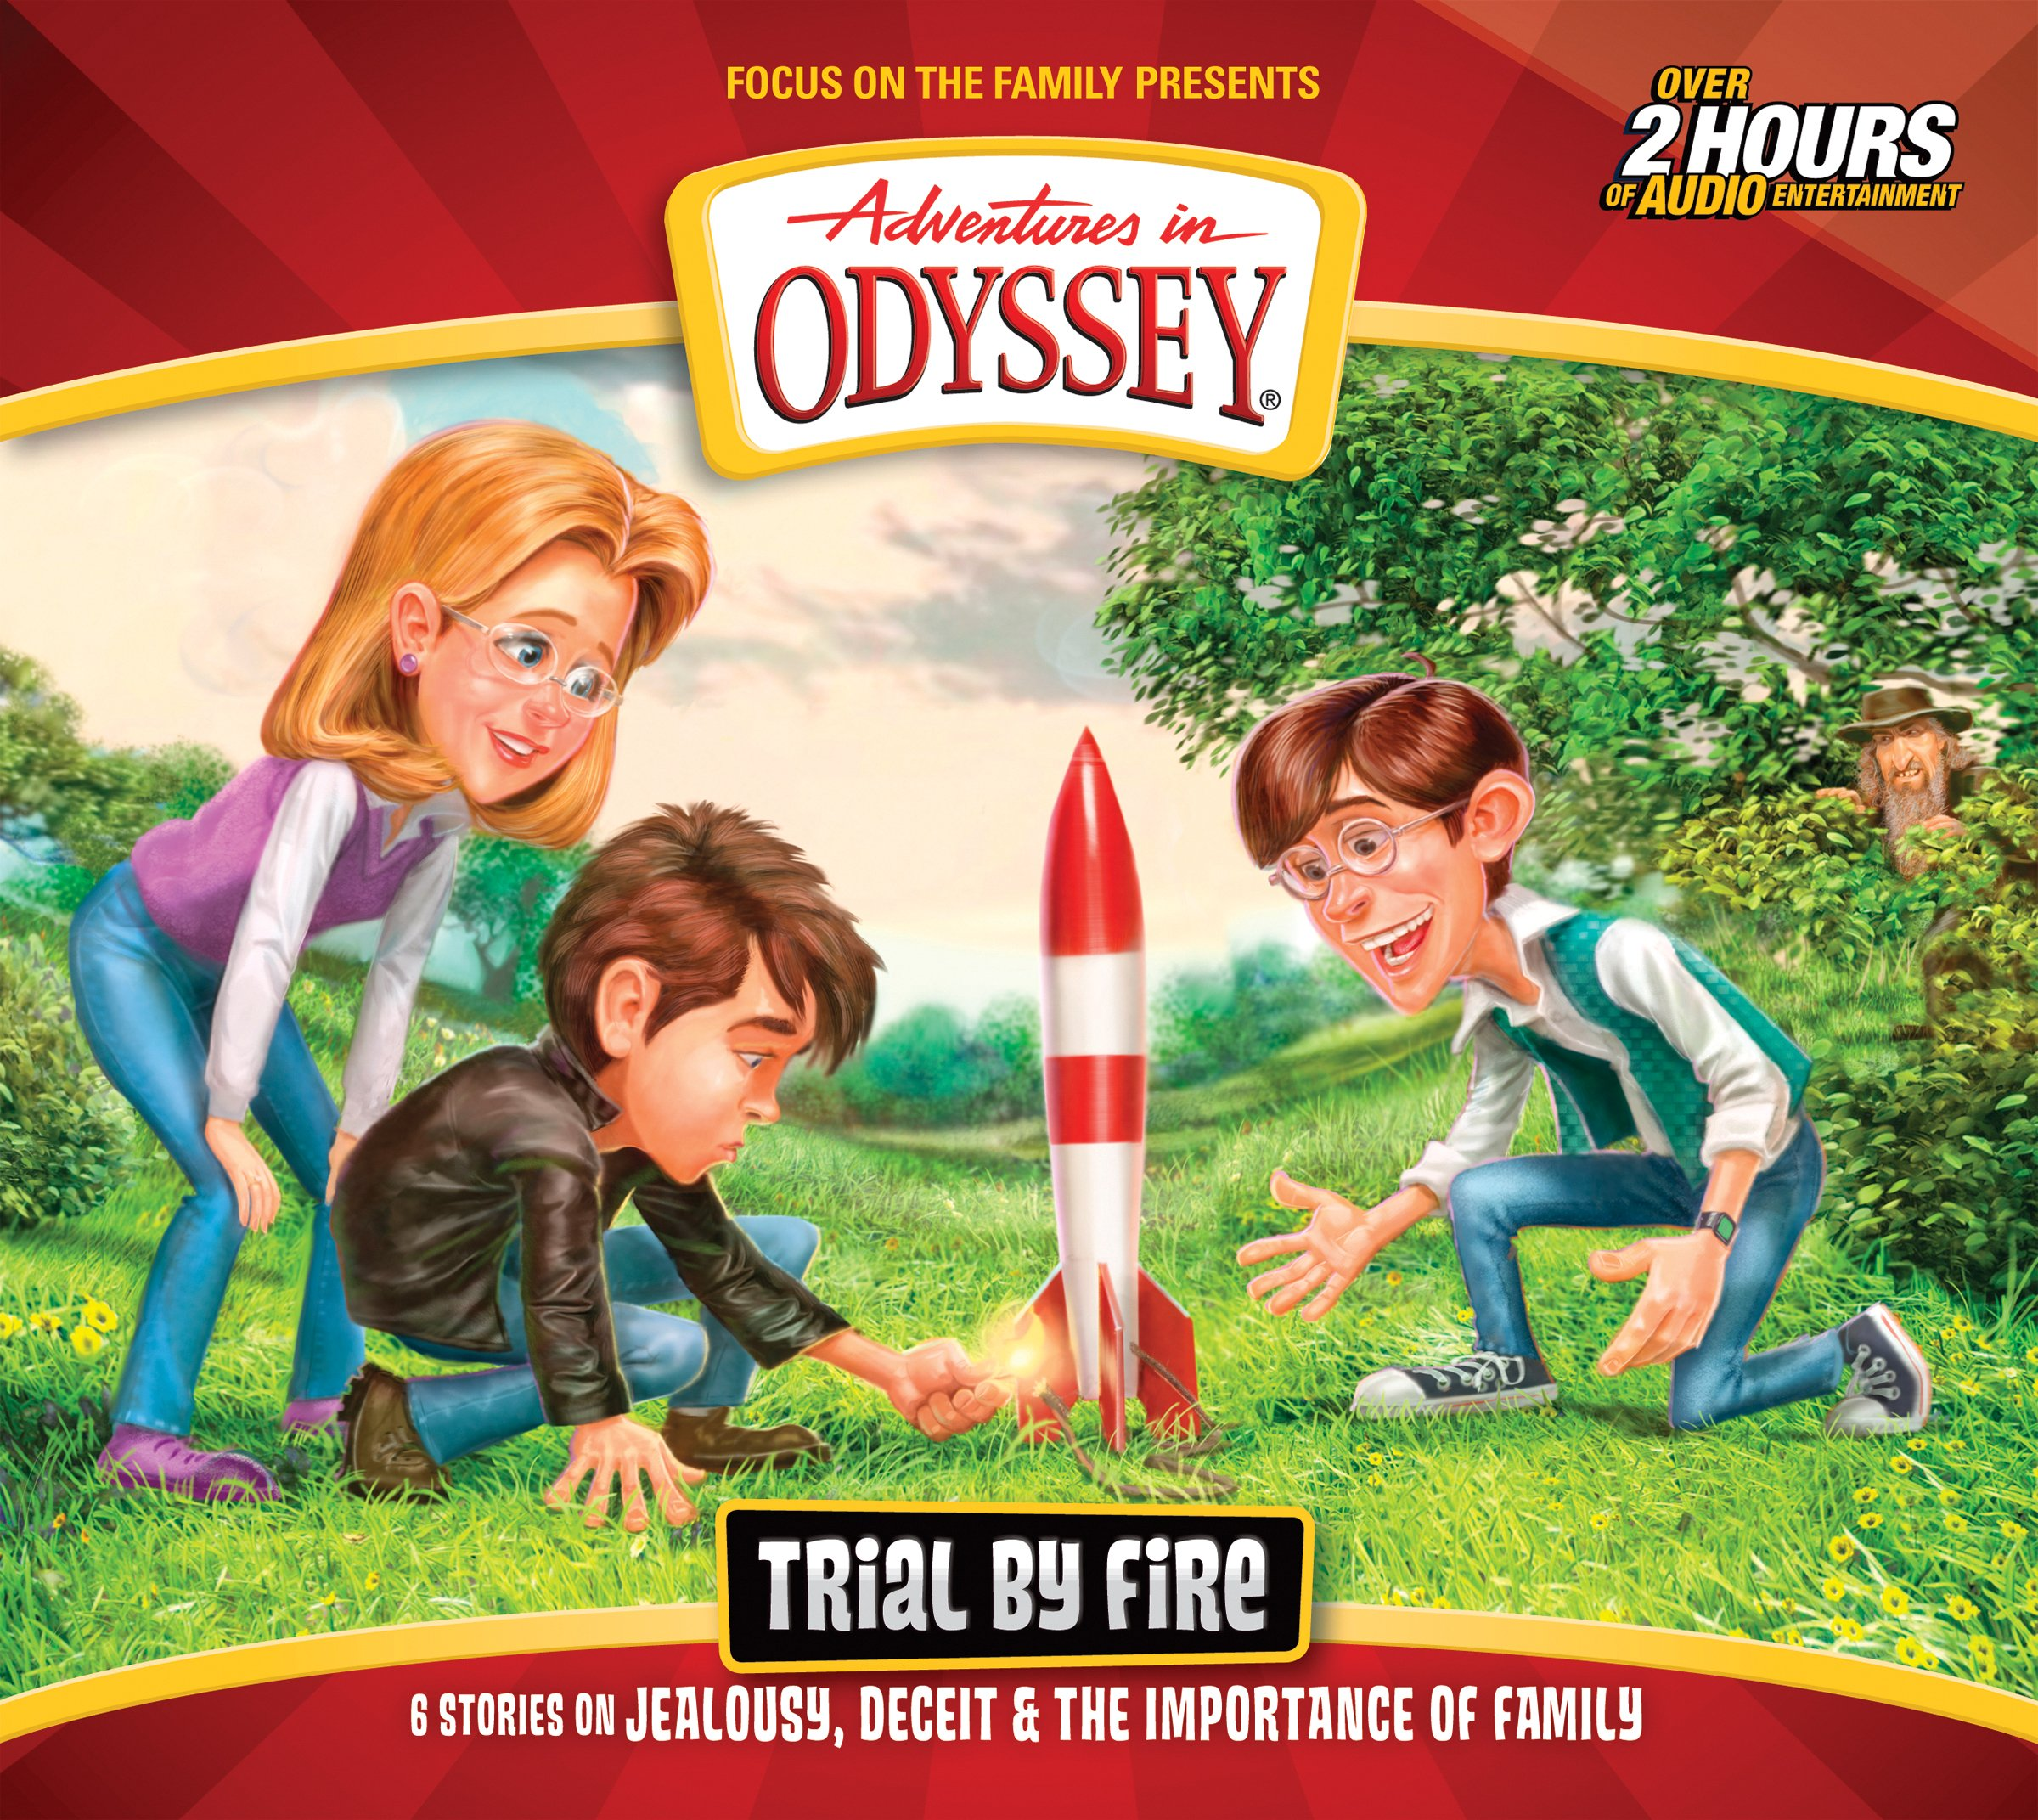 Trial by Fire (Adventures in Odyssey) by Focus on the Family (Image #1)